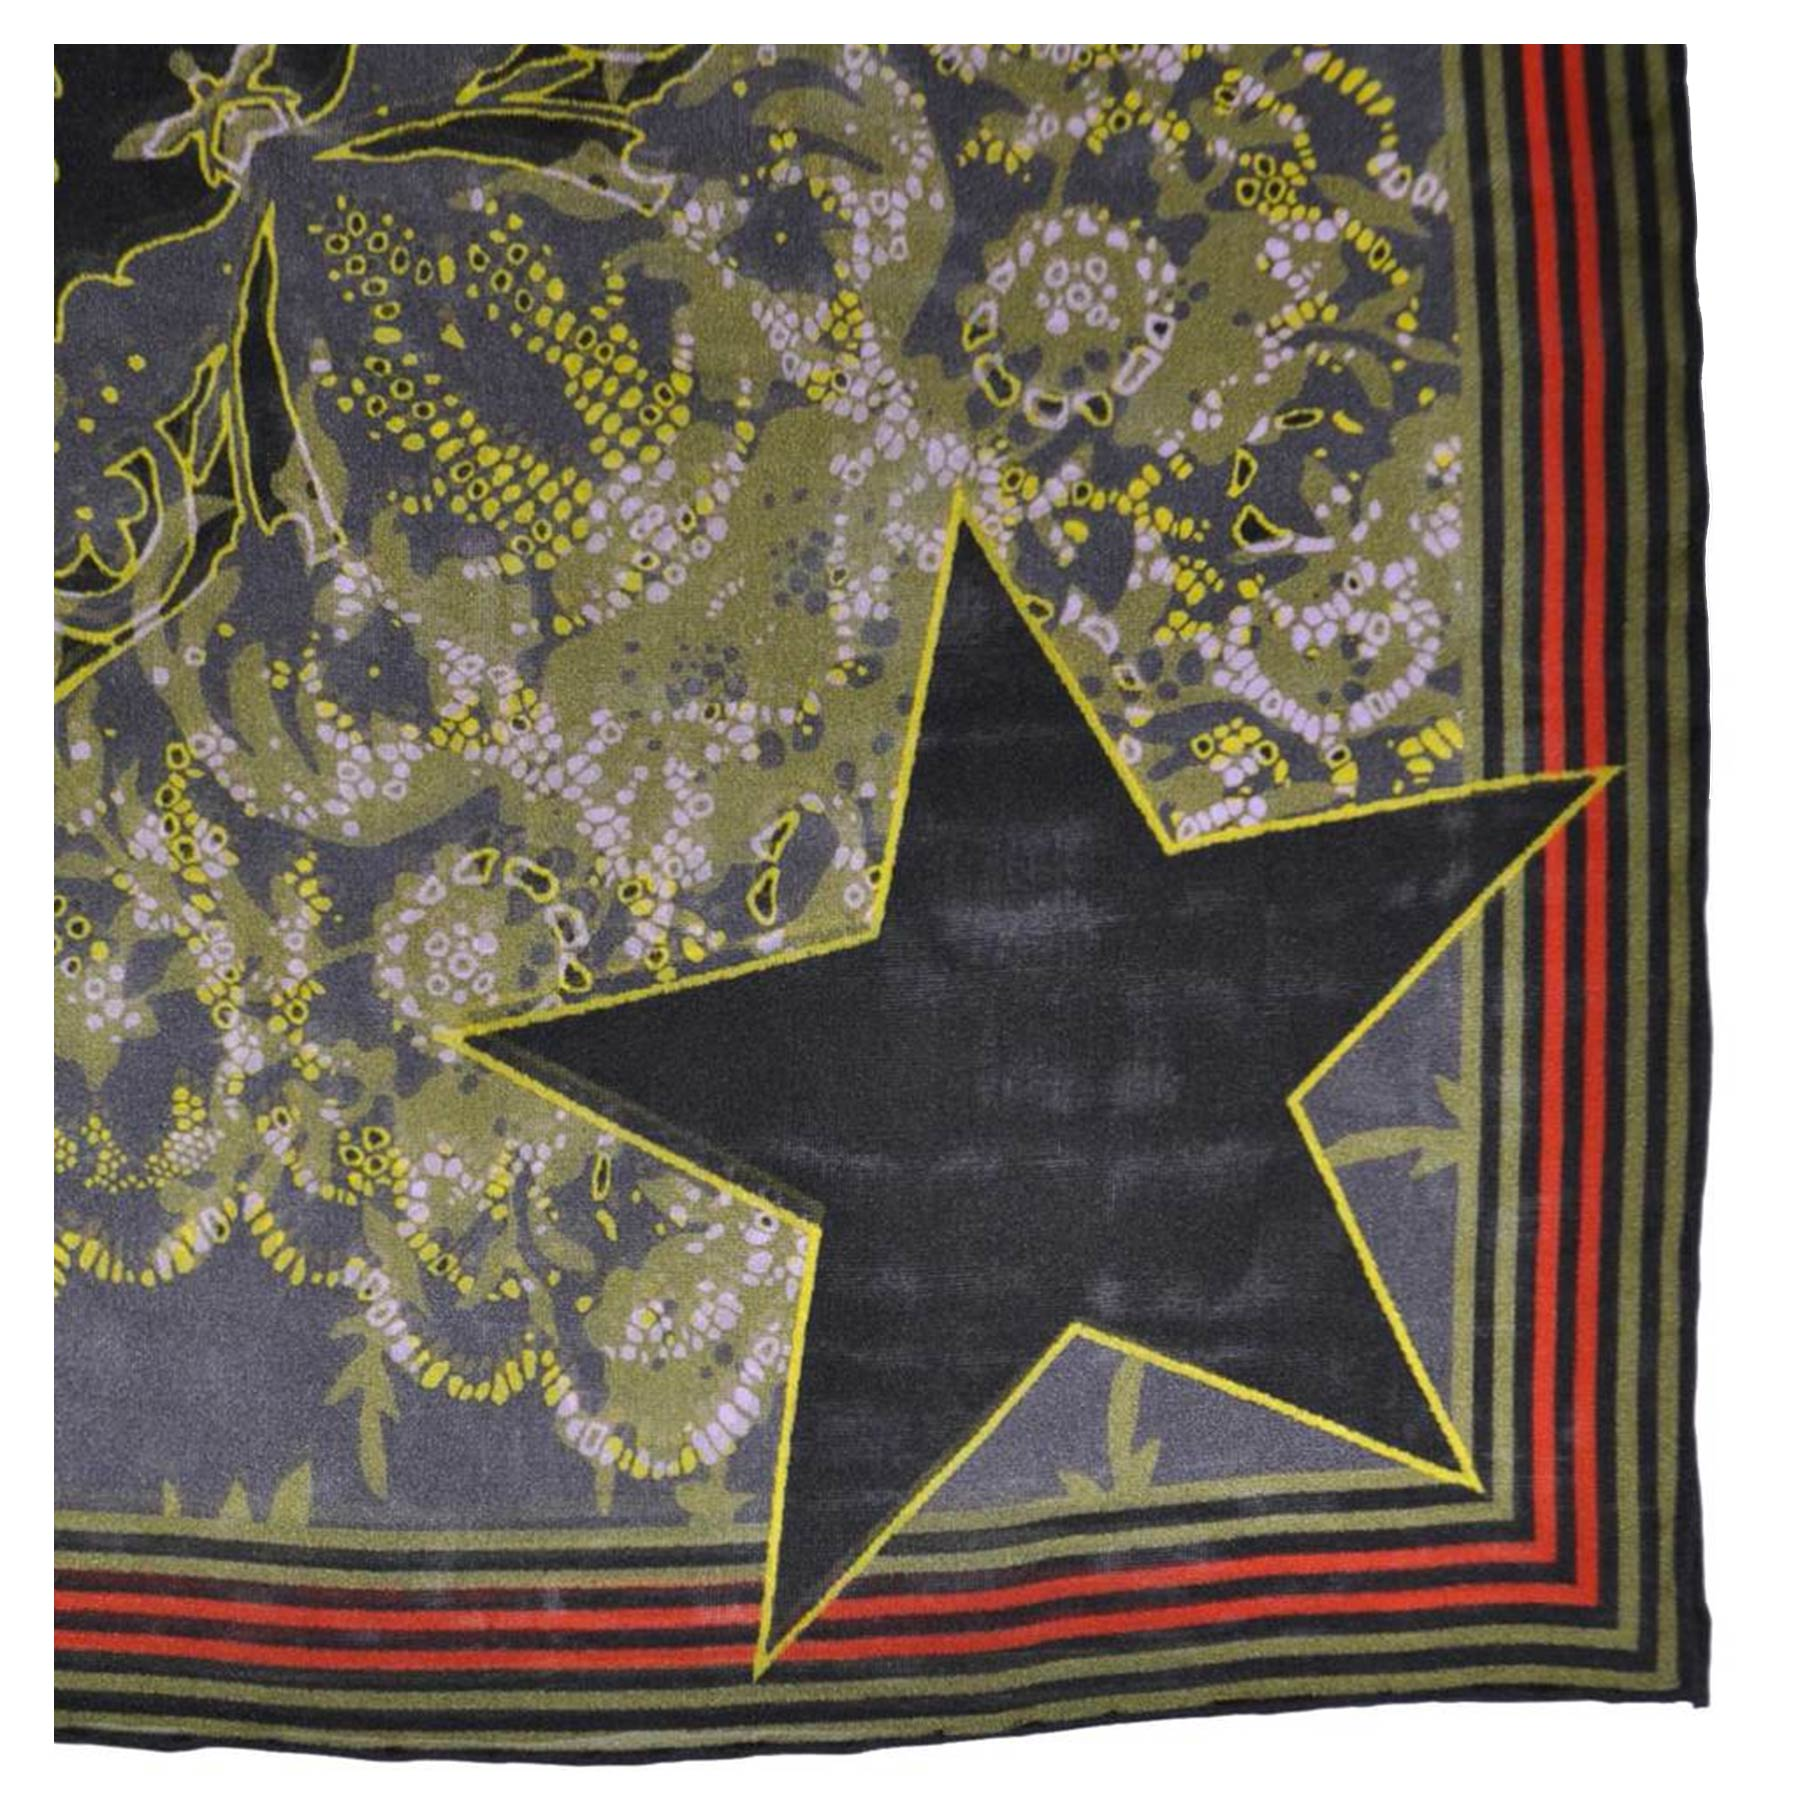 Givenchy Scarf Black Green Design- Chiffon Silk Scarf - FINAL SALE